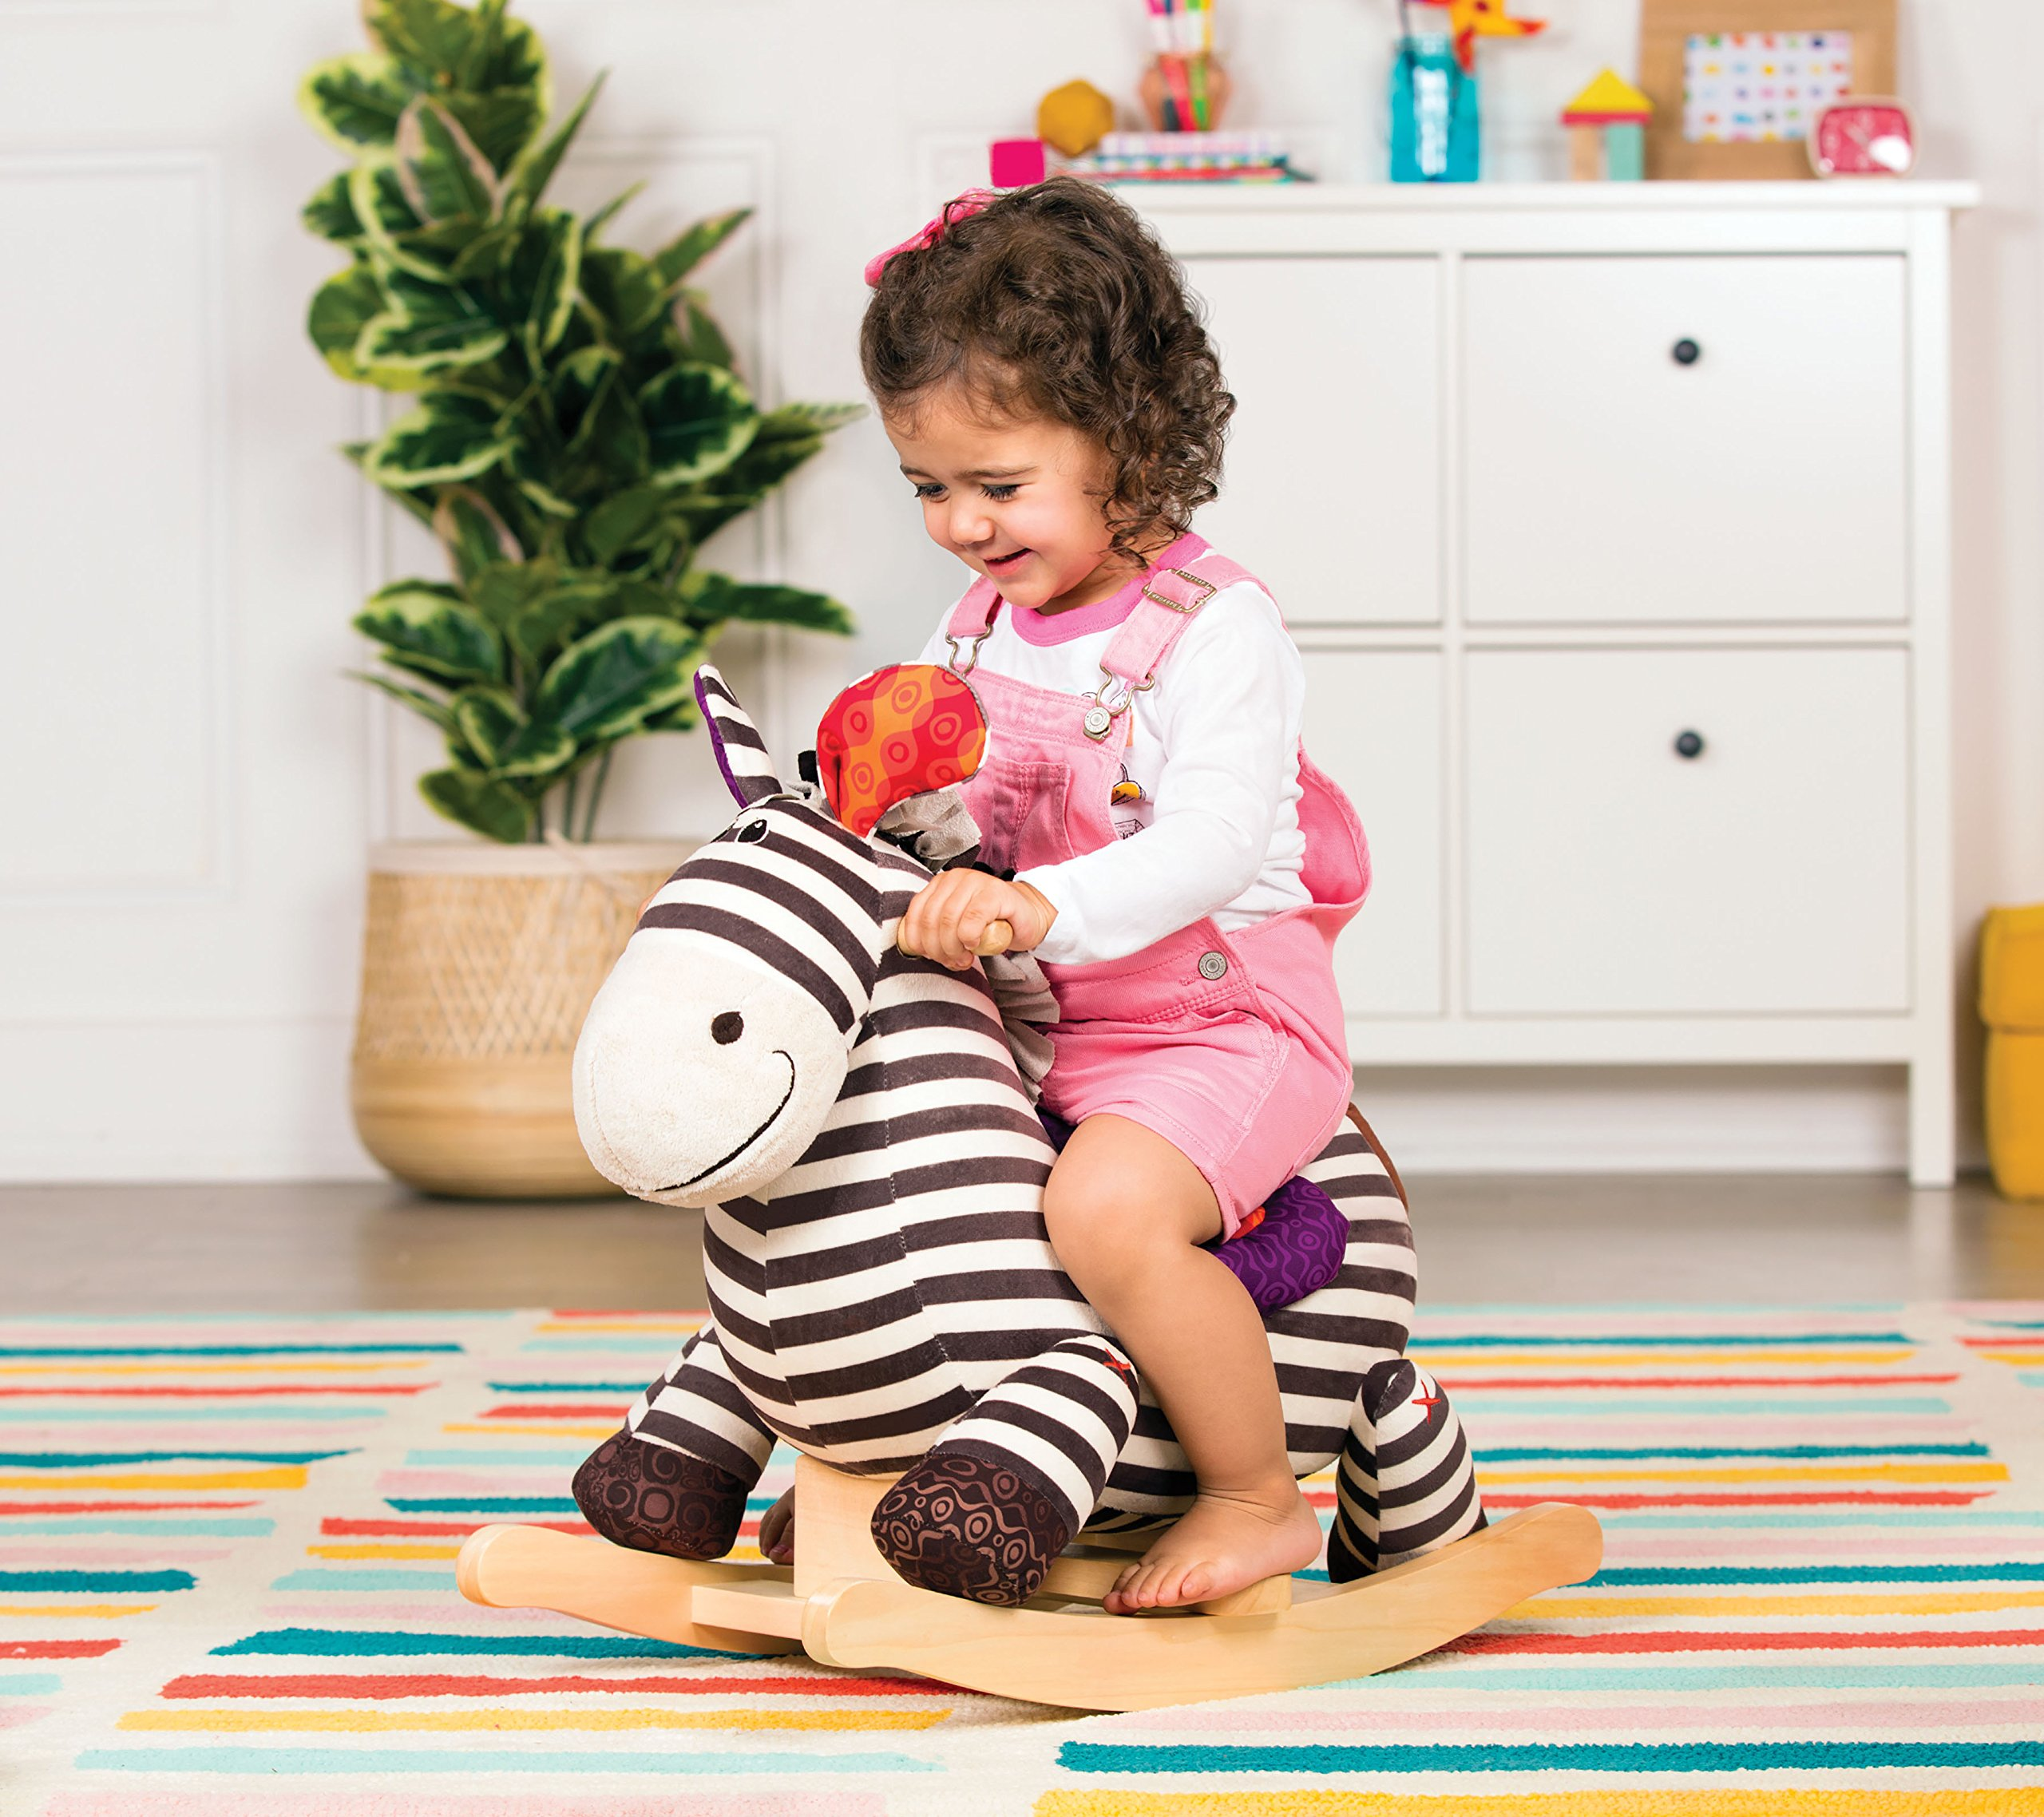 B toys – Kazoo Wooden Rocking Zebra – Rodeo Rocker – BPA Free Plush Ride On Zebra Rocking Horse for Toddlers and Babies 18m+ by B. toys by Battat (Image #6)